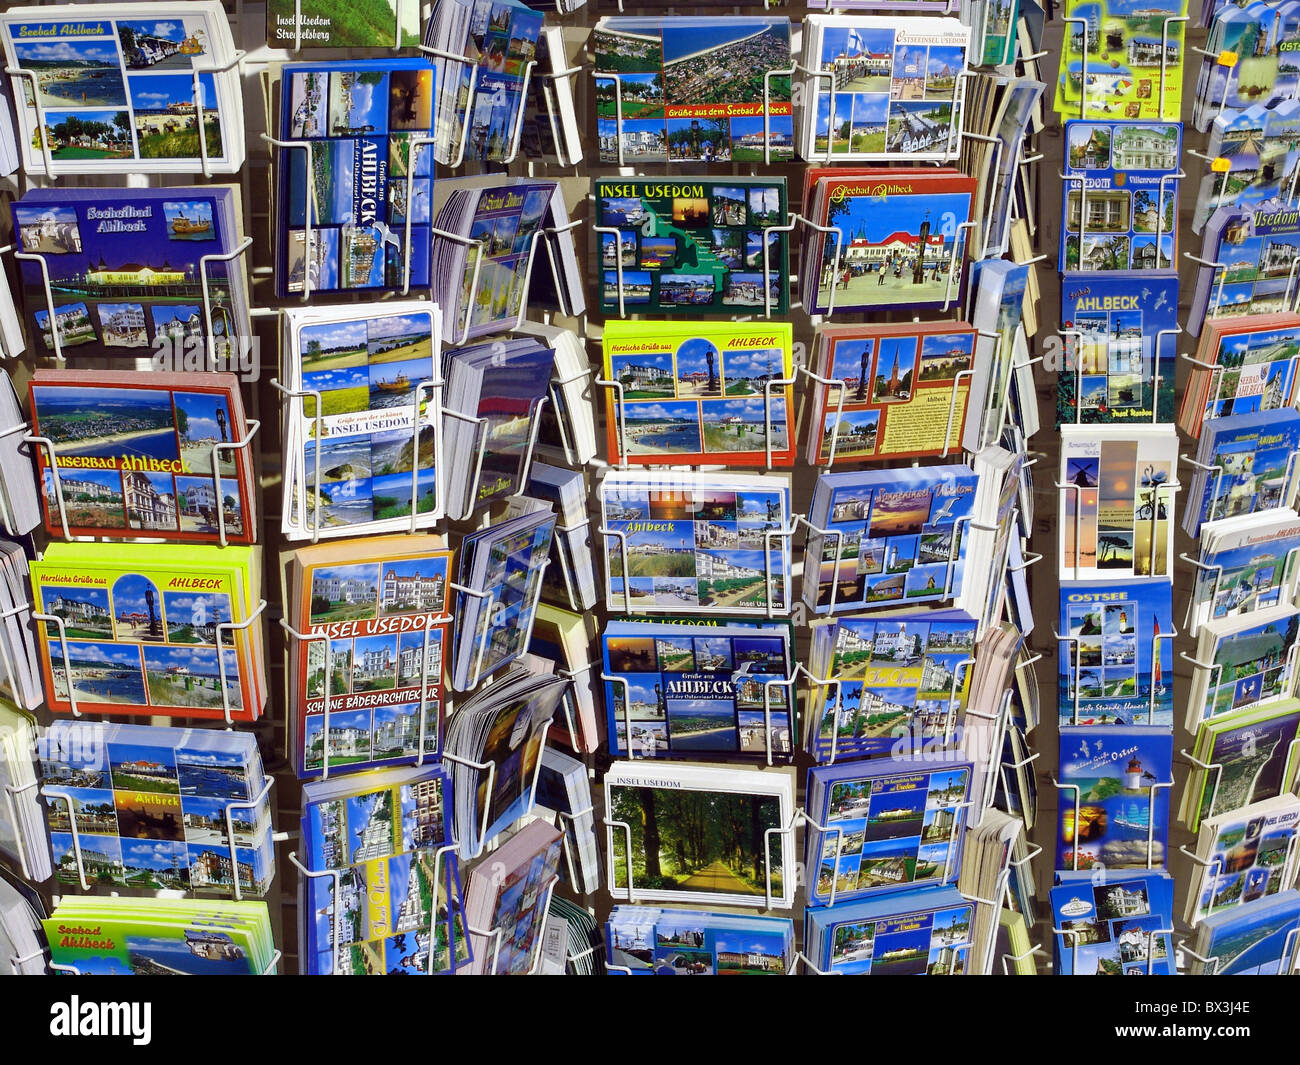 postcards postcards stands racks maps cards play cards souvenir tourism Usedom seaside resort Ahlbeck Balt - Stock Image